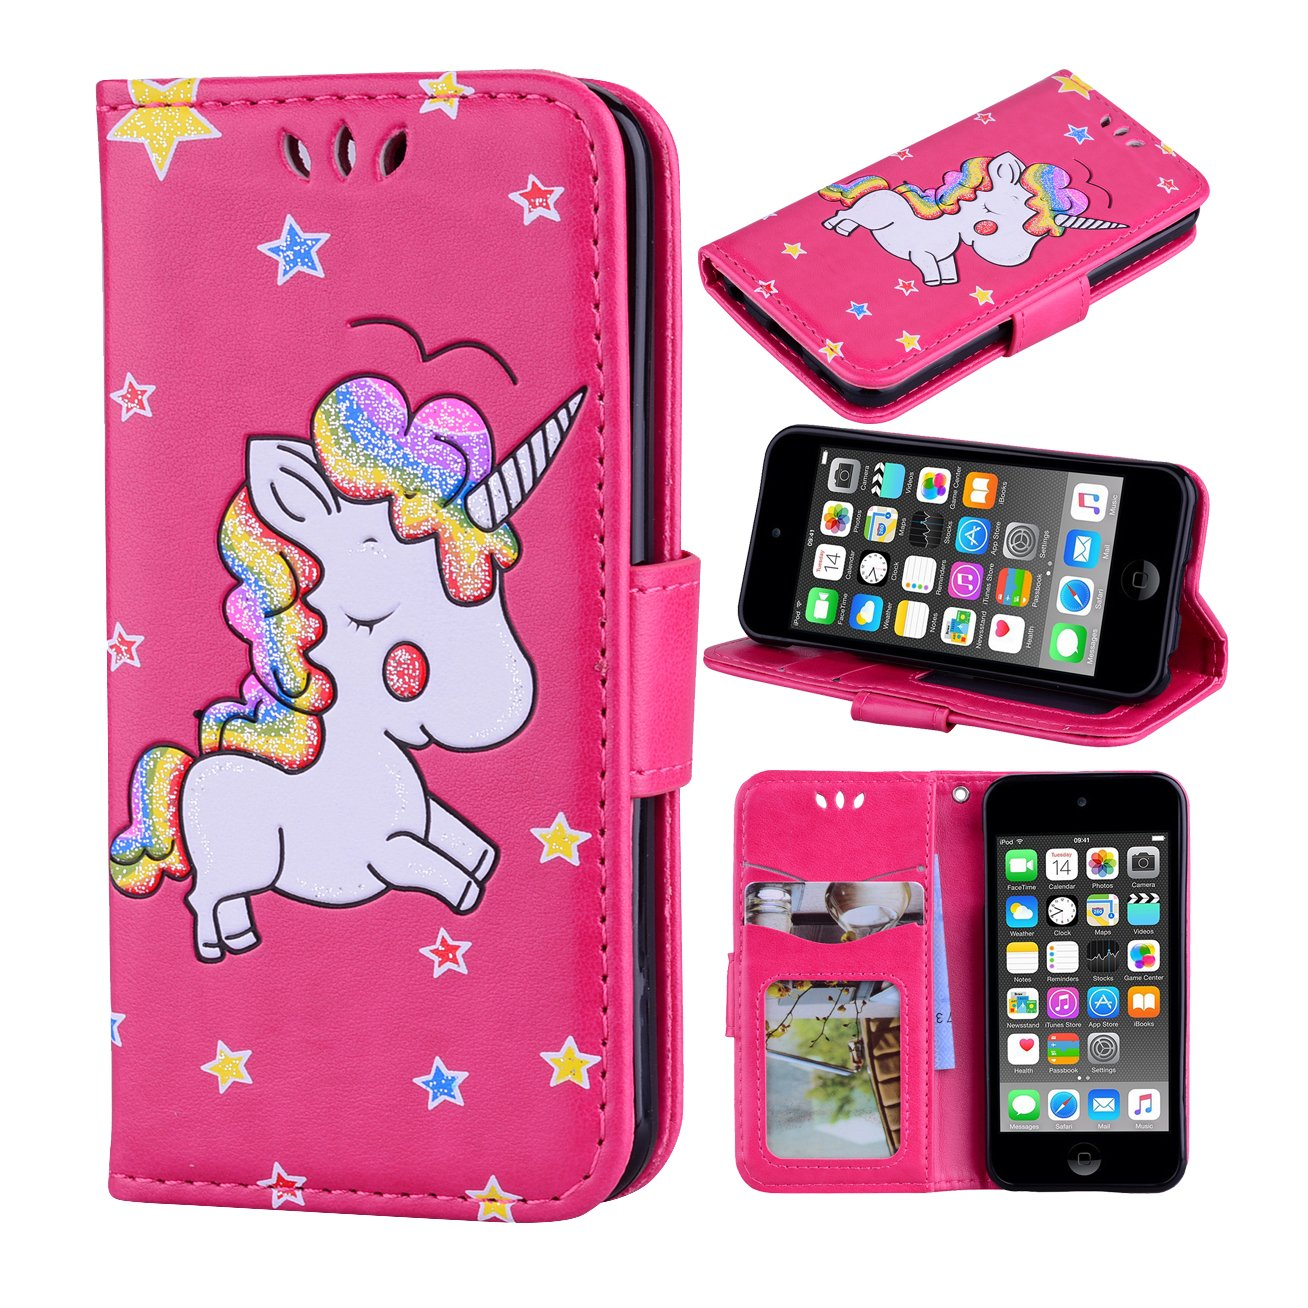 7b31a8f41e3 Get Quotations · iPod Touch 6 Case, iPod Touch 5 Case, Ranyi [3D Glitter  Unicorn Embossed